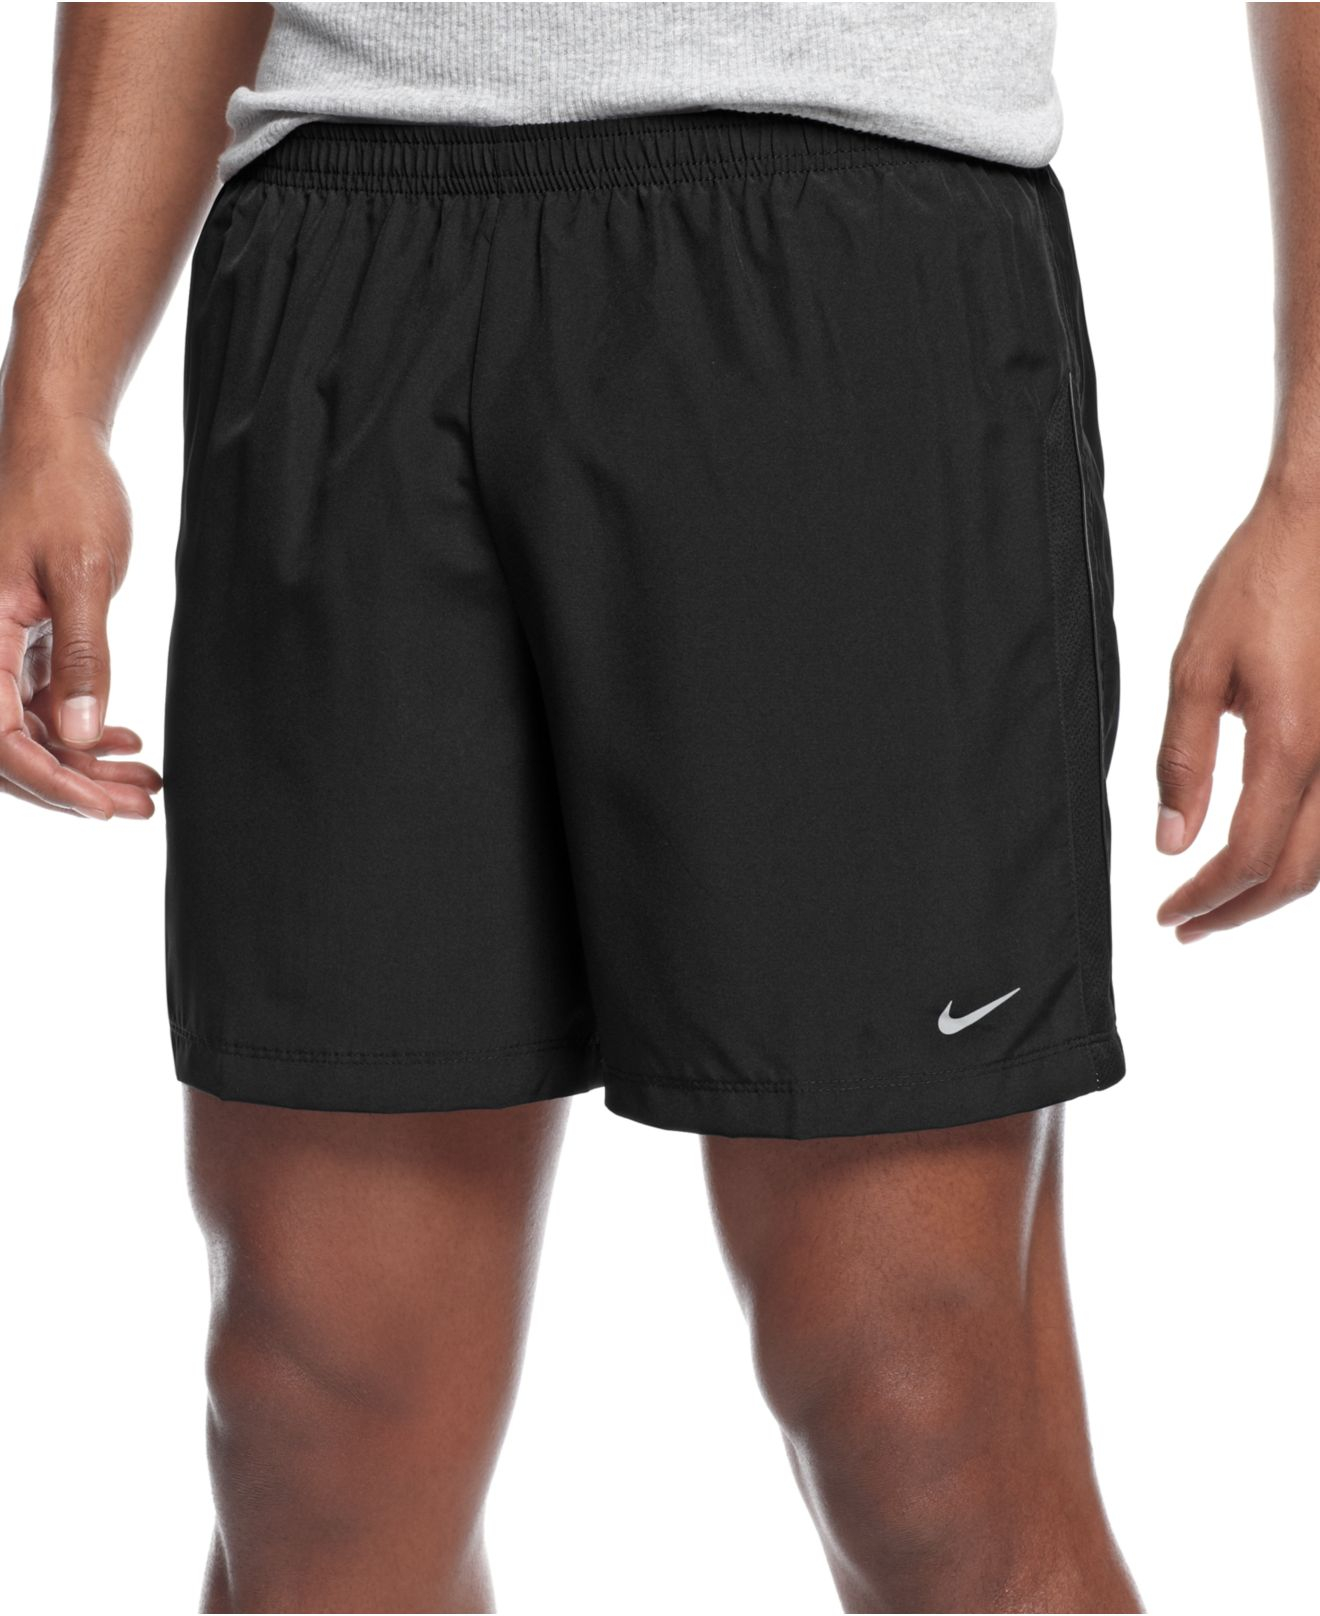 Running Shorts Dri Lyst In Fit Men Reflective For Black 5 Nike wXqpgZ